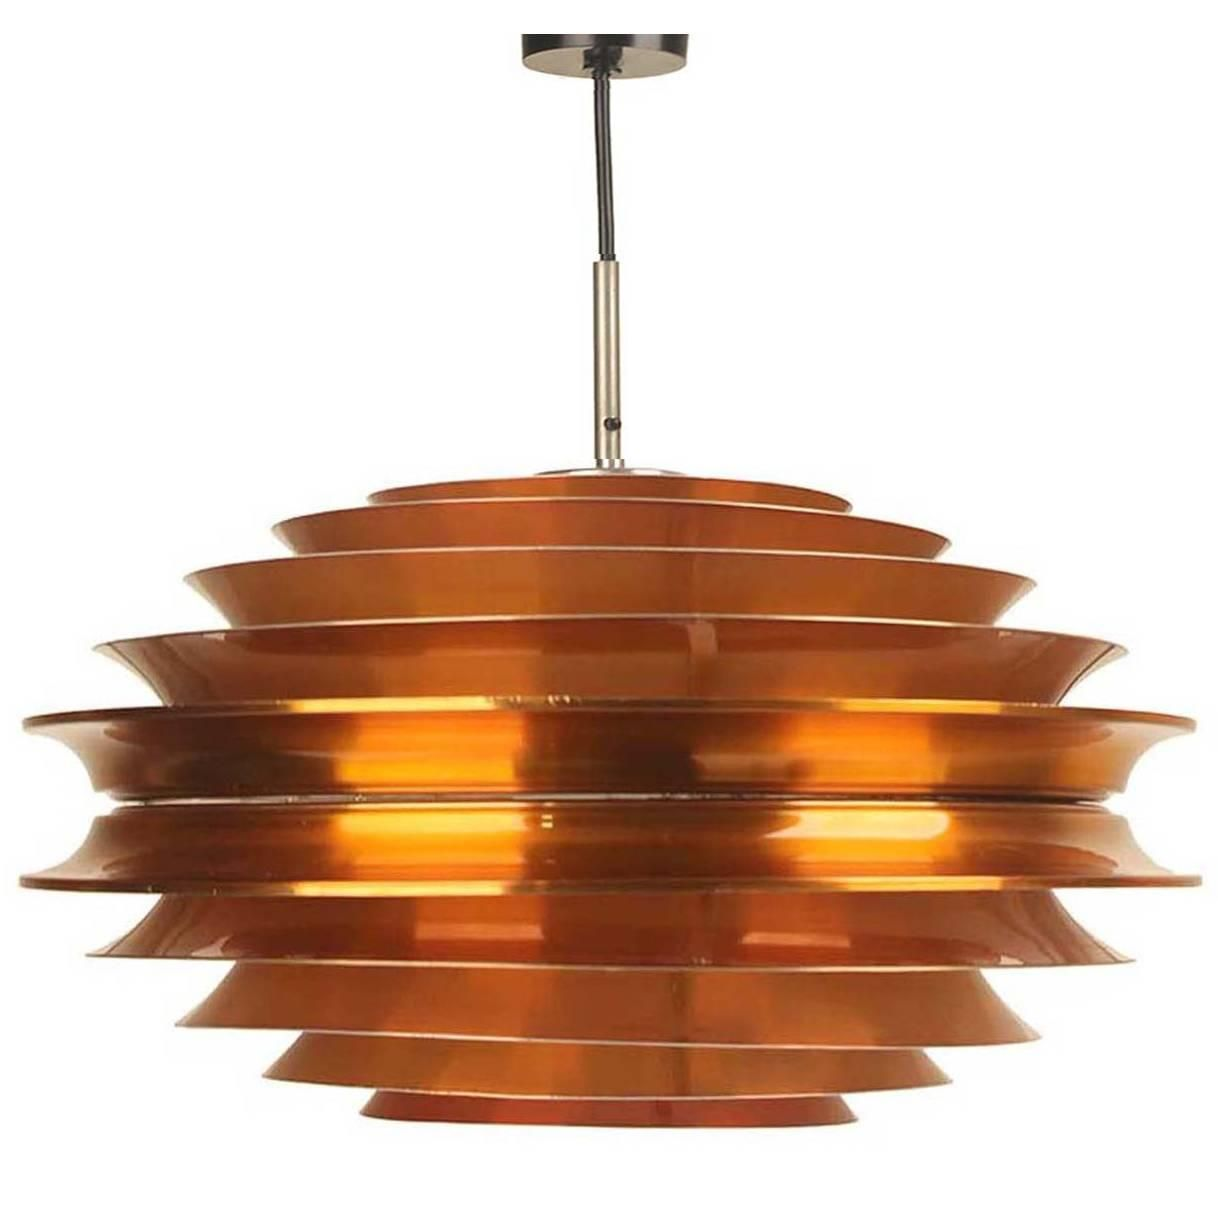 Modern carl thore chandelier modernist ceiling pendant lamp 1960s danish modern carl thore chandelier modernist ceiling pendant lamp 1960s mozeypictures Image collections